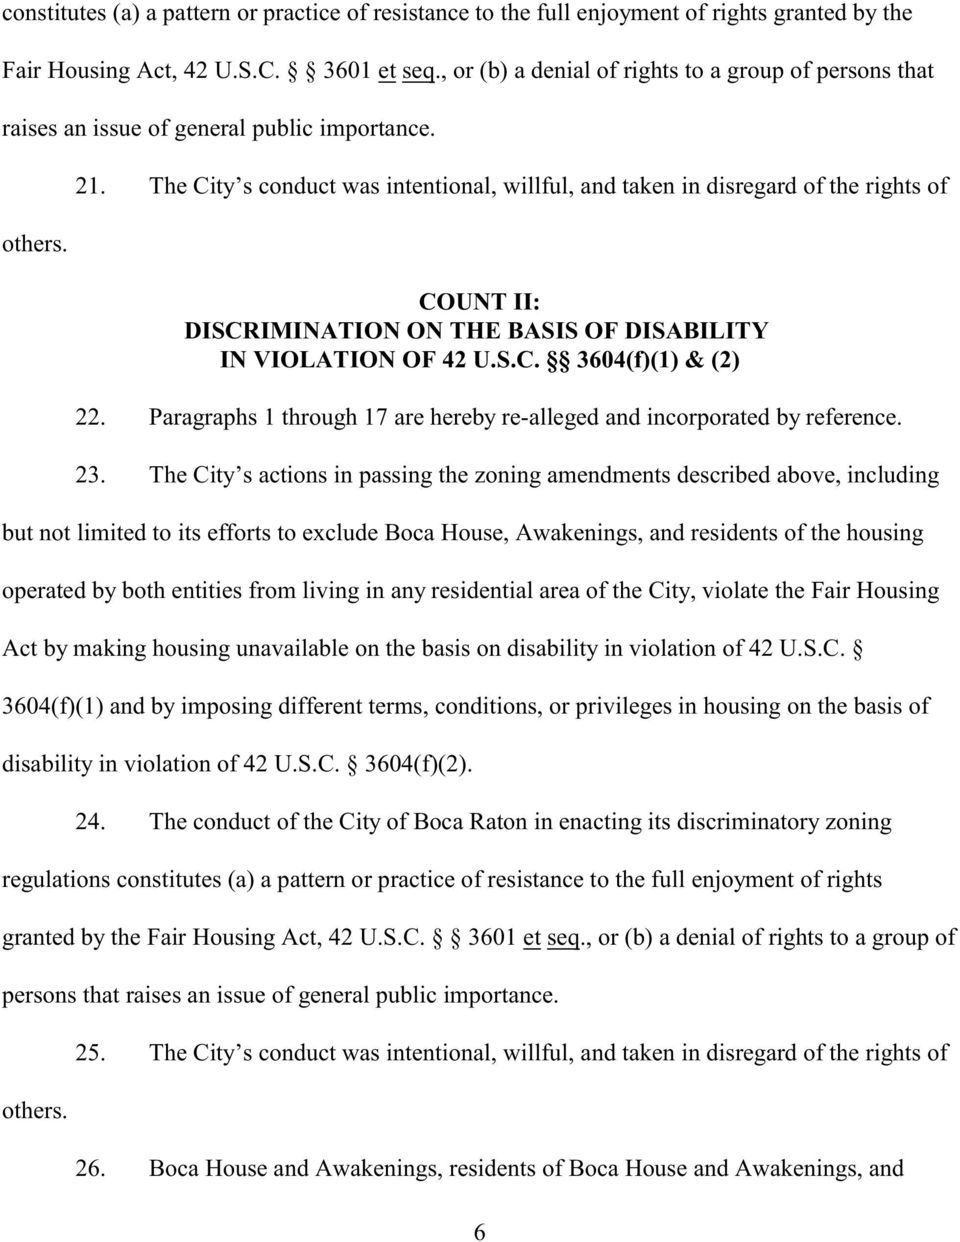 The City s conduct was intentional, willful, and taken in disregard of the rights of COUNT II: DISCRIMINATION ON THE BASIS OF DISABILITY IN VIOLATION OF 42 U.S.C. 3604(f)(1) & (2) 22.